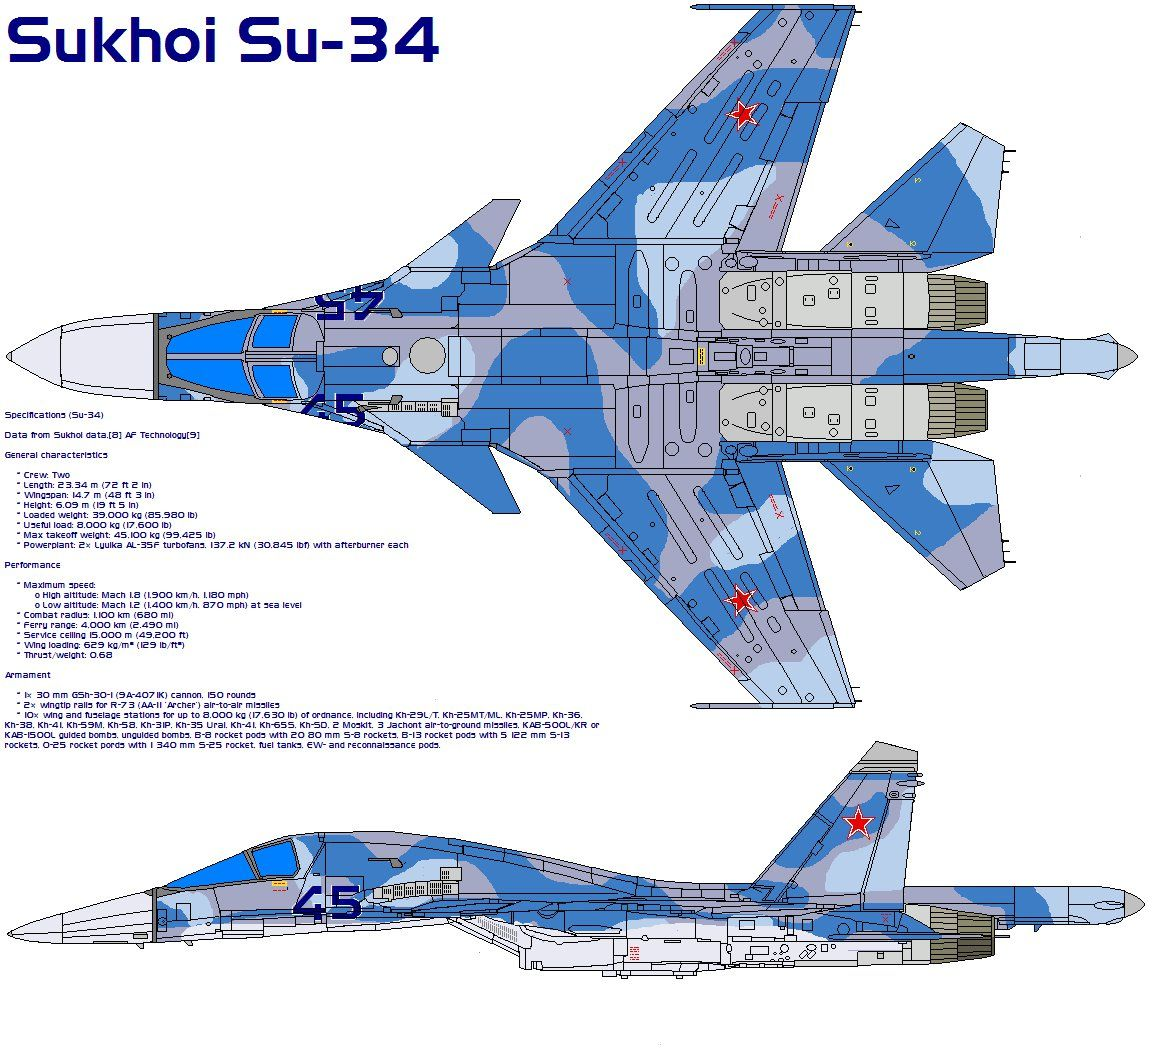 Loading su 33 flanker d carrier based fighter jet su 27 - Sukhoi Su 34 Development A Dedicated Fighter Bomber Version Of The Su 27